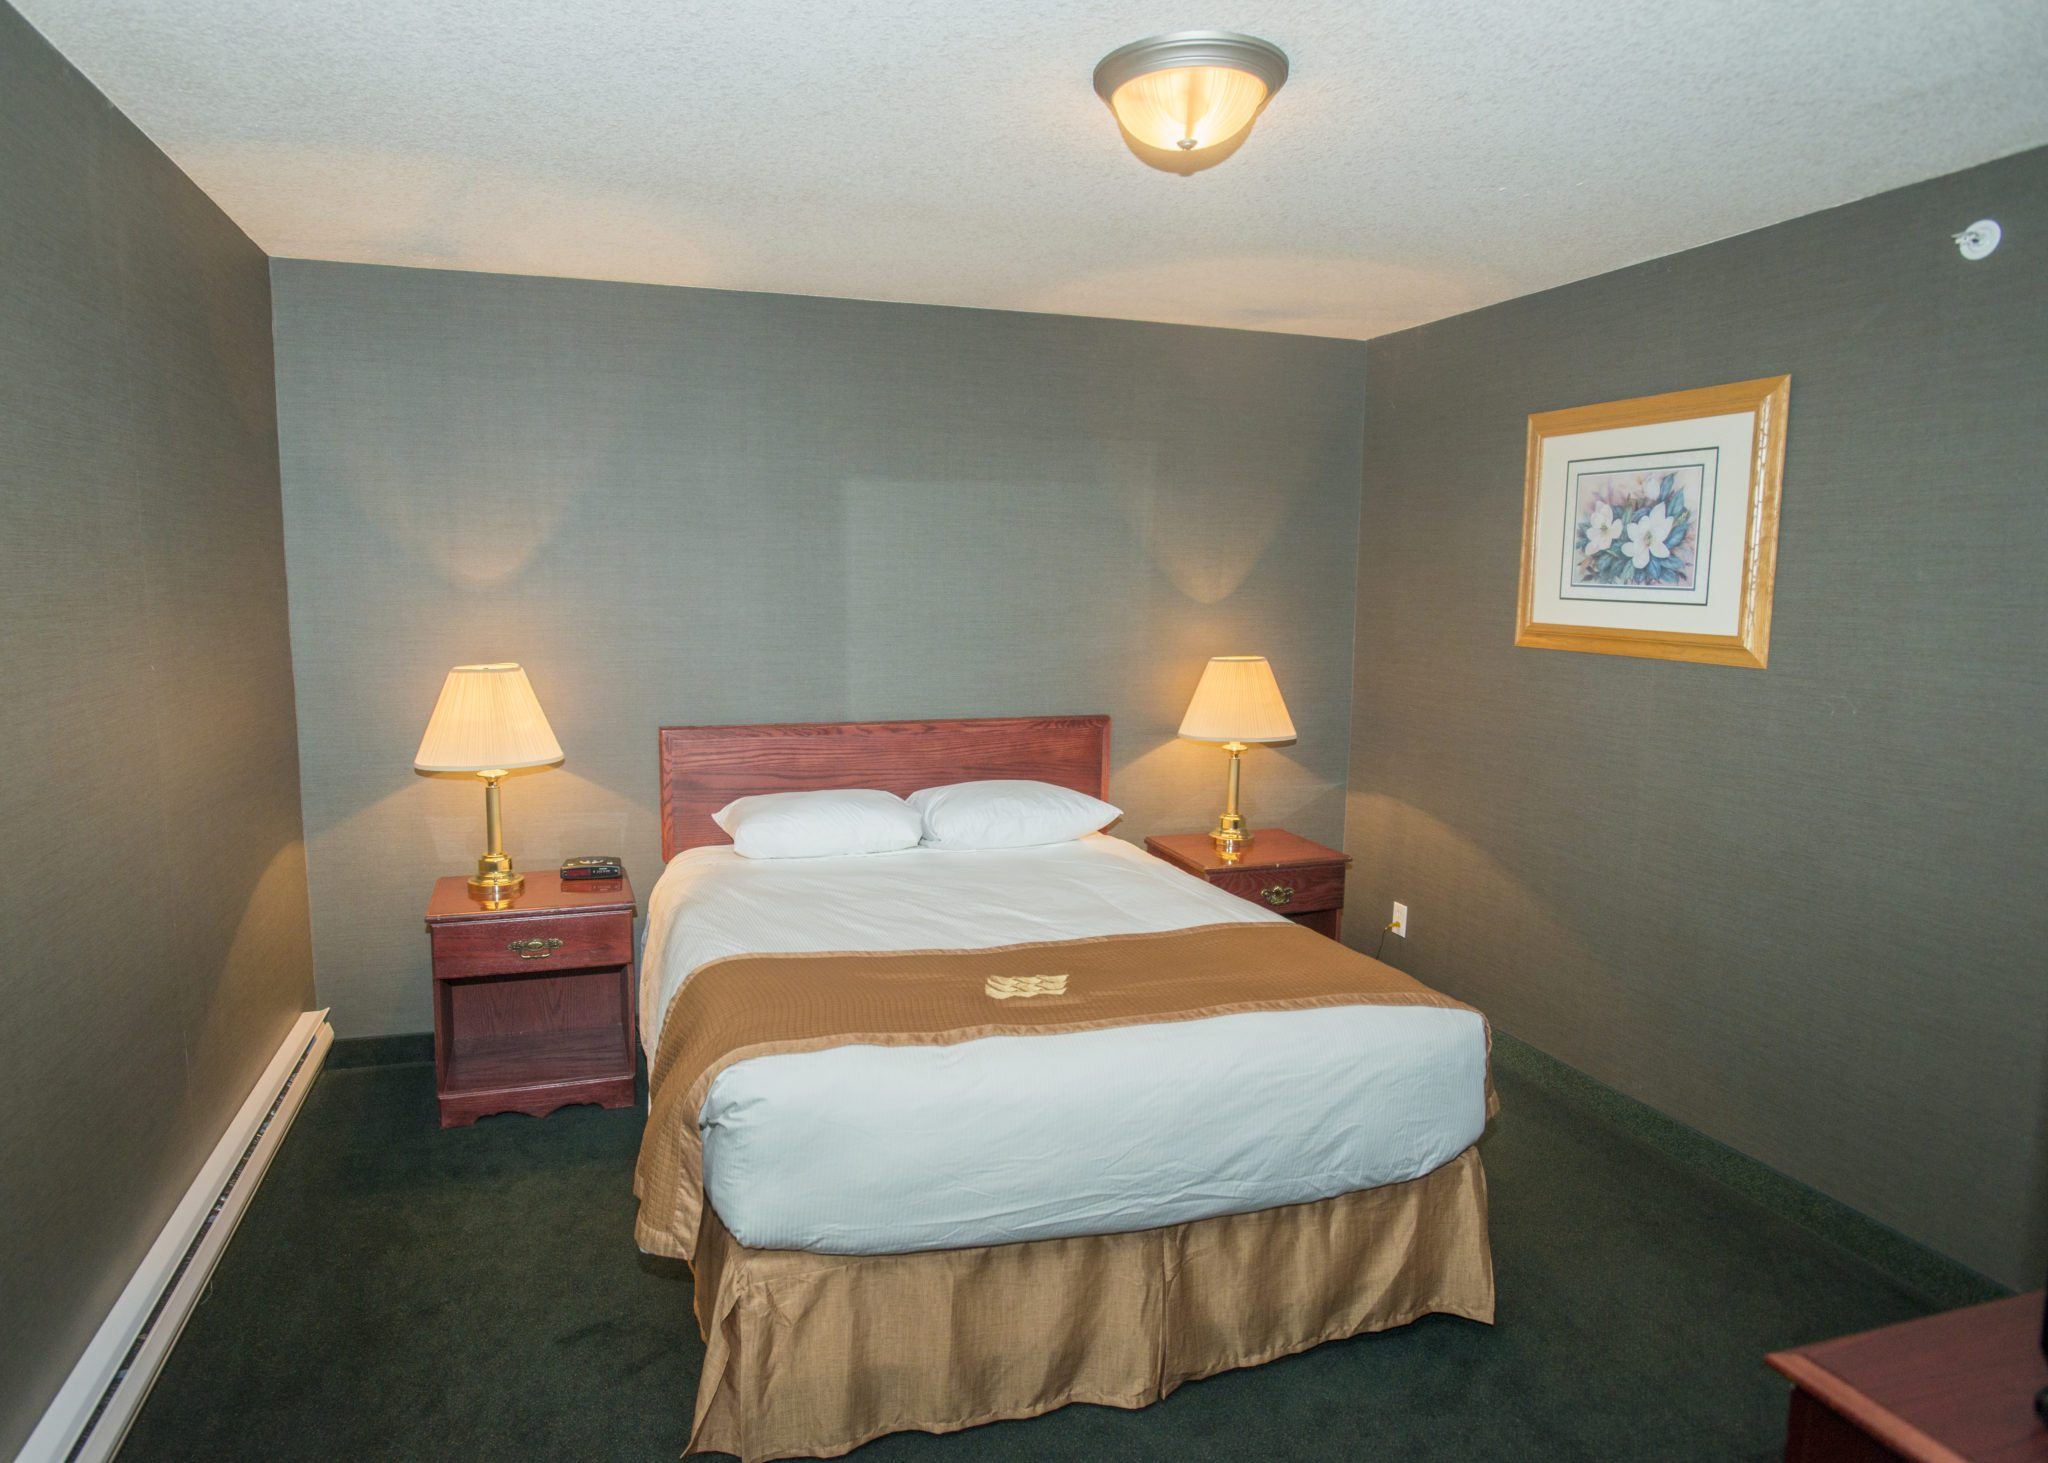 fort saskatchewan chat rooms Rooms and rates for super 8 fort saskatchewan in fort saskatchewan, ab get the best available rates and start earning points with wyndham rewards.